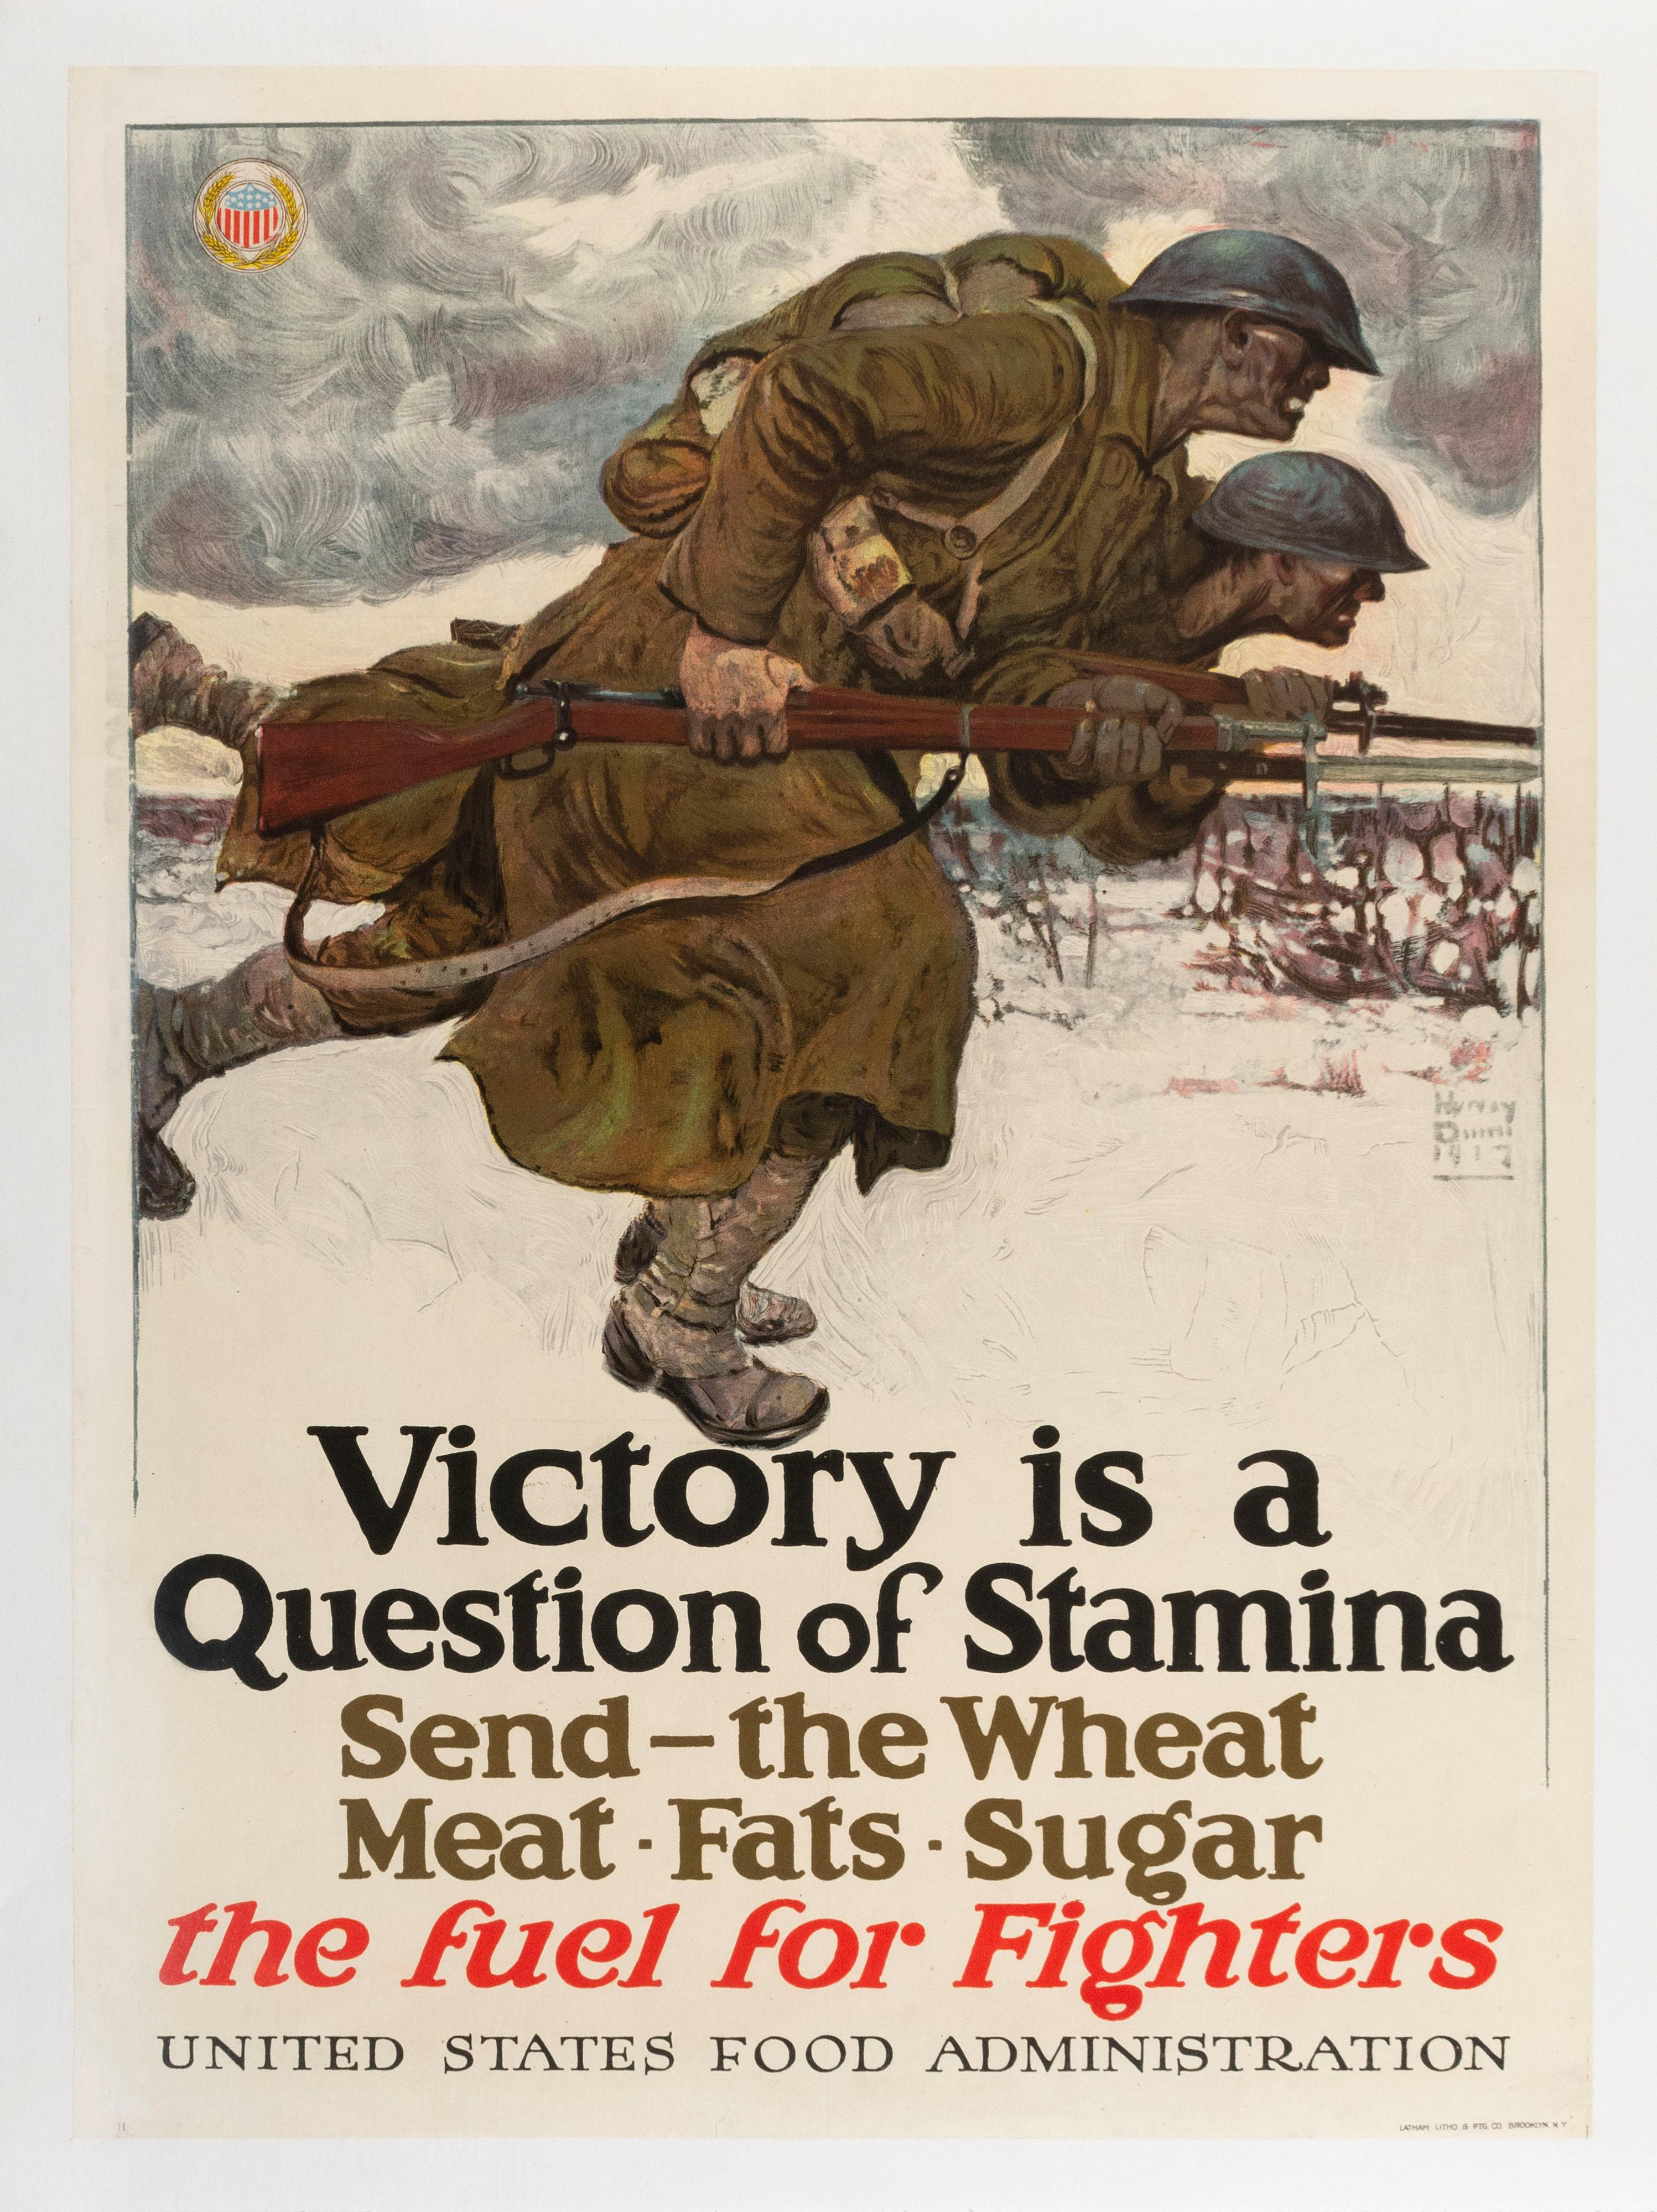 """""""VICTORY IS A QUESTION OF STAMINA SEND - THE WHEAT, MEAT, FATS, SUGAR THE FUEL FOR FIGHTERS"""" WORLD WAR I POSTER By Harvey Dunn for t..."""